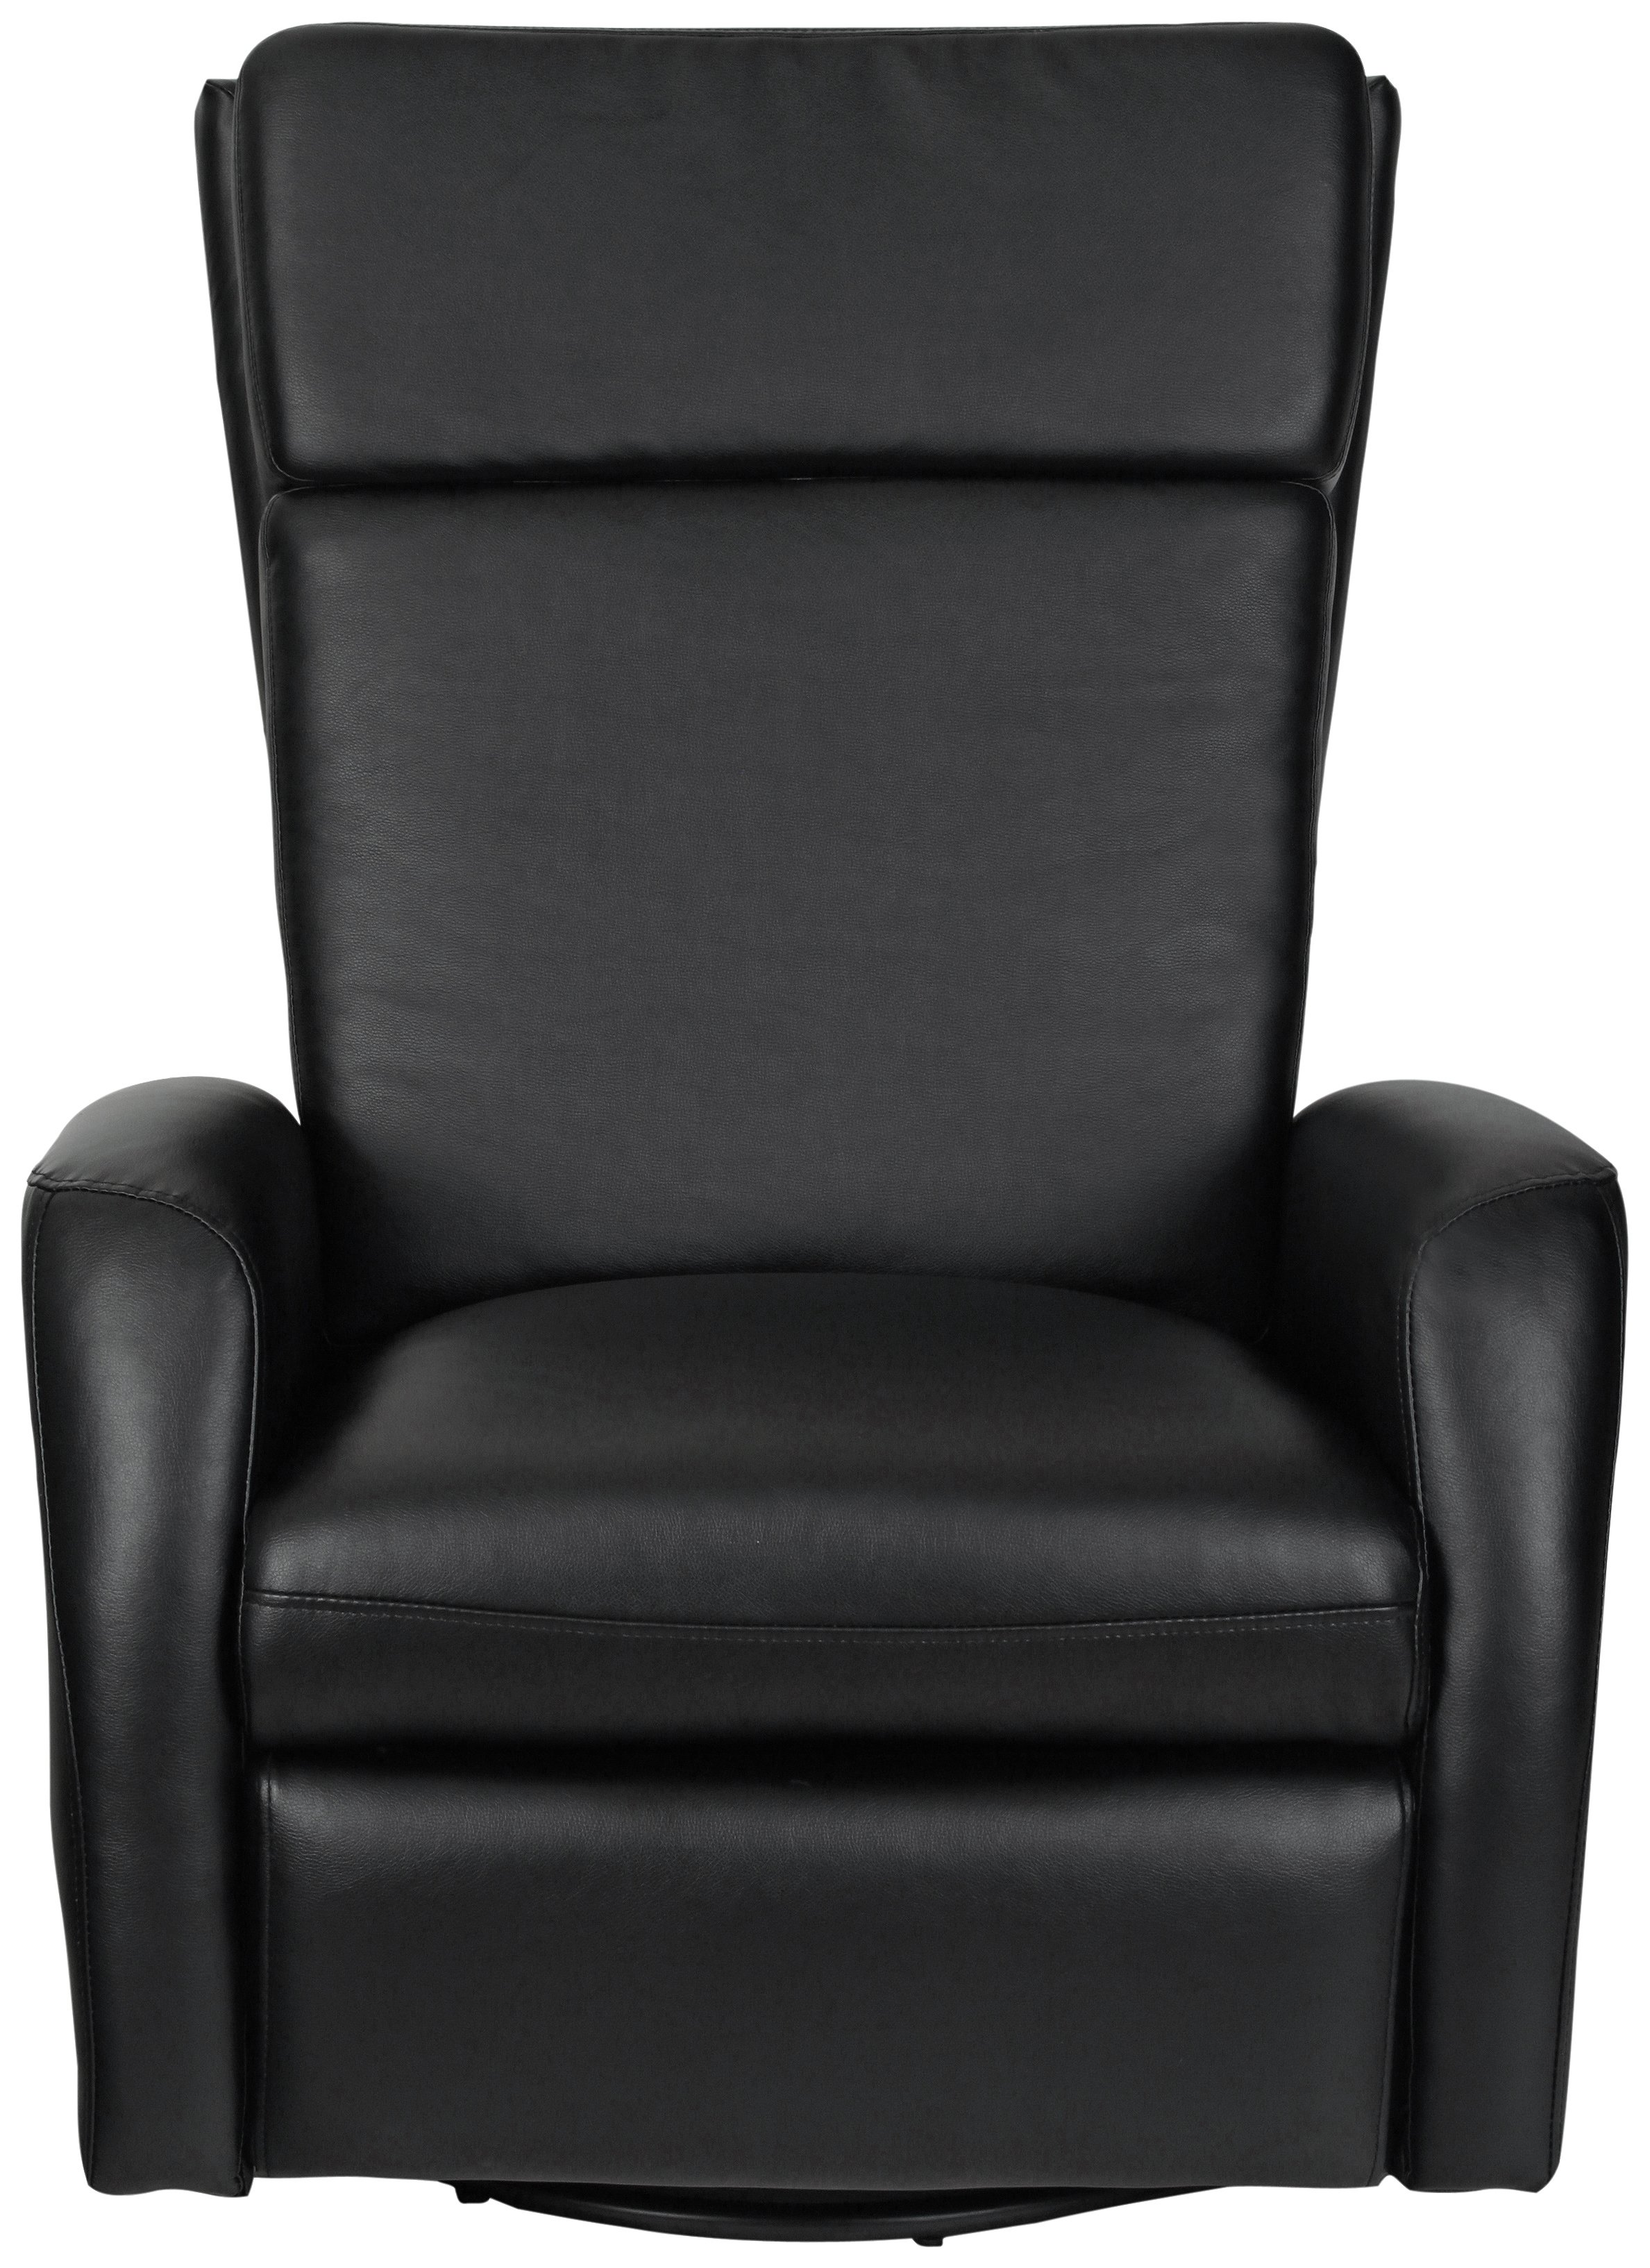 Collection - Rock-R-Round - Leather Eff - Recliner Chair - Black